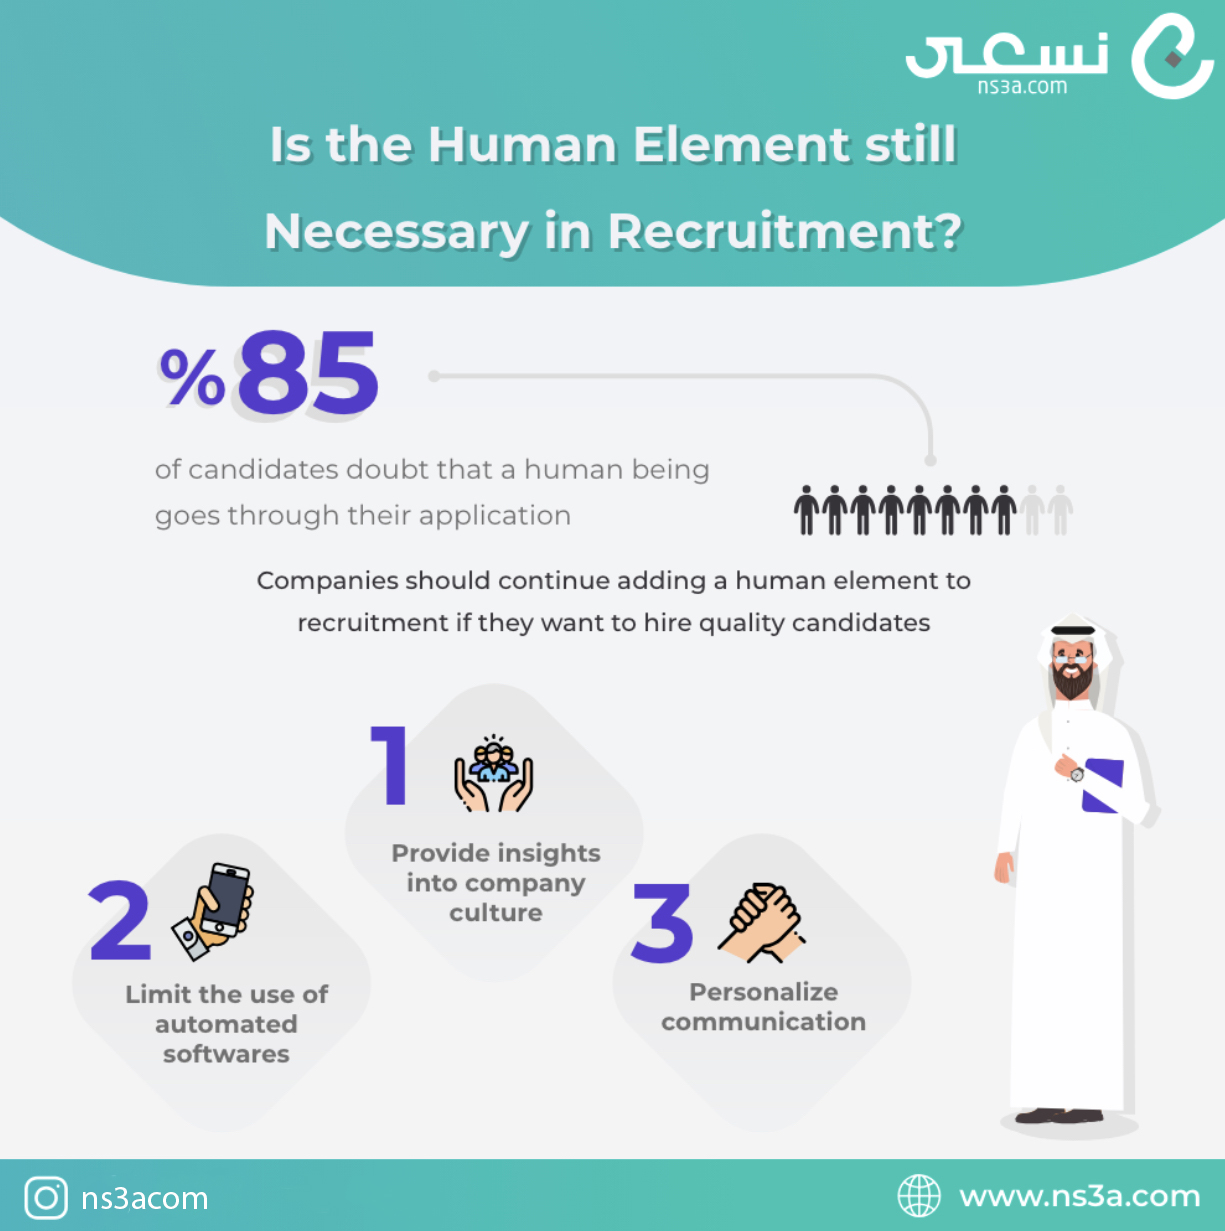 Is the Human Element still Necessary in Recruitment?